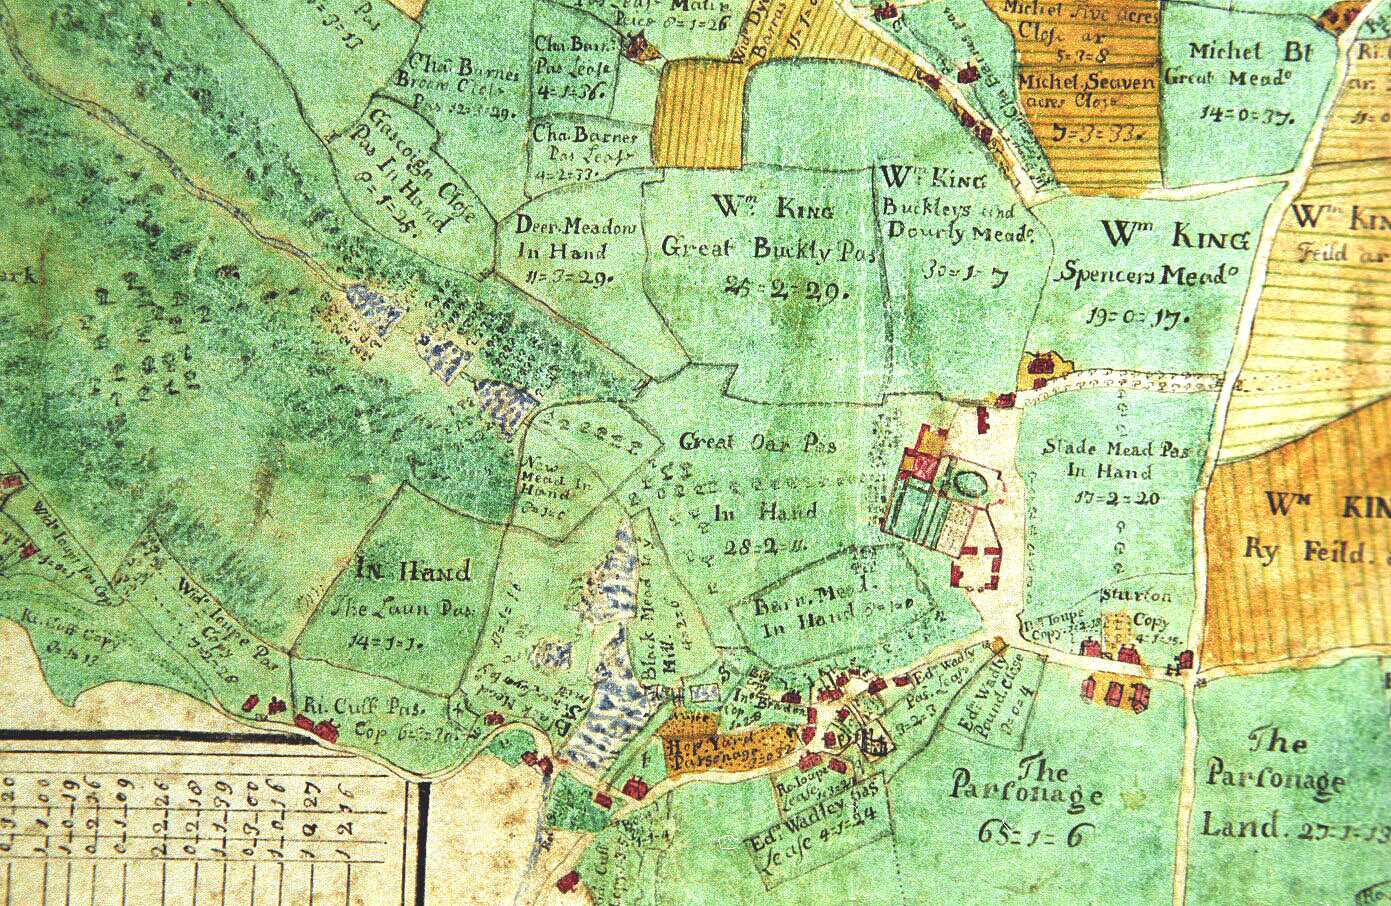 The 1722 map shows the new Stourhead House with its garden intruding slightly onto the courtyard of the stables and outbuildings below and to the right. Was this a retained part of the old house?